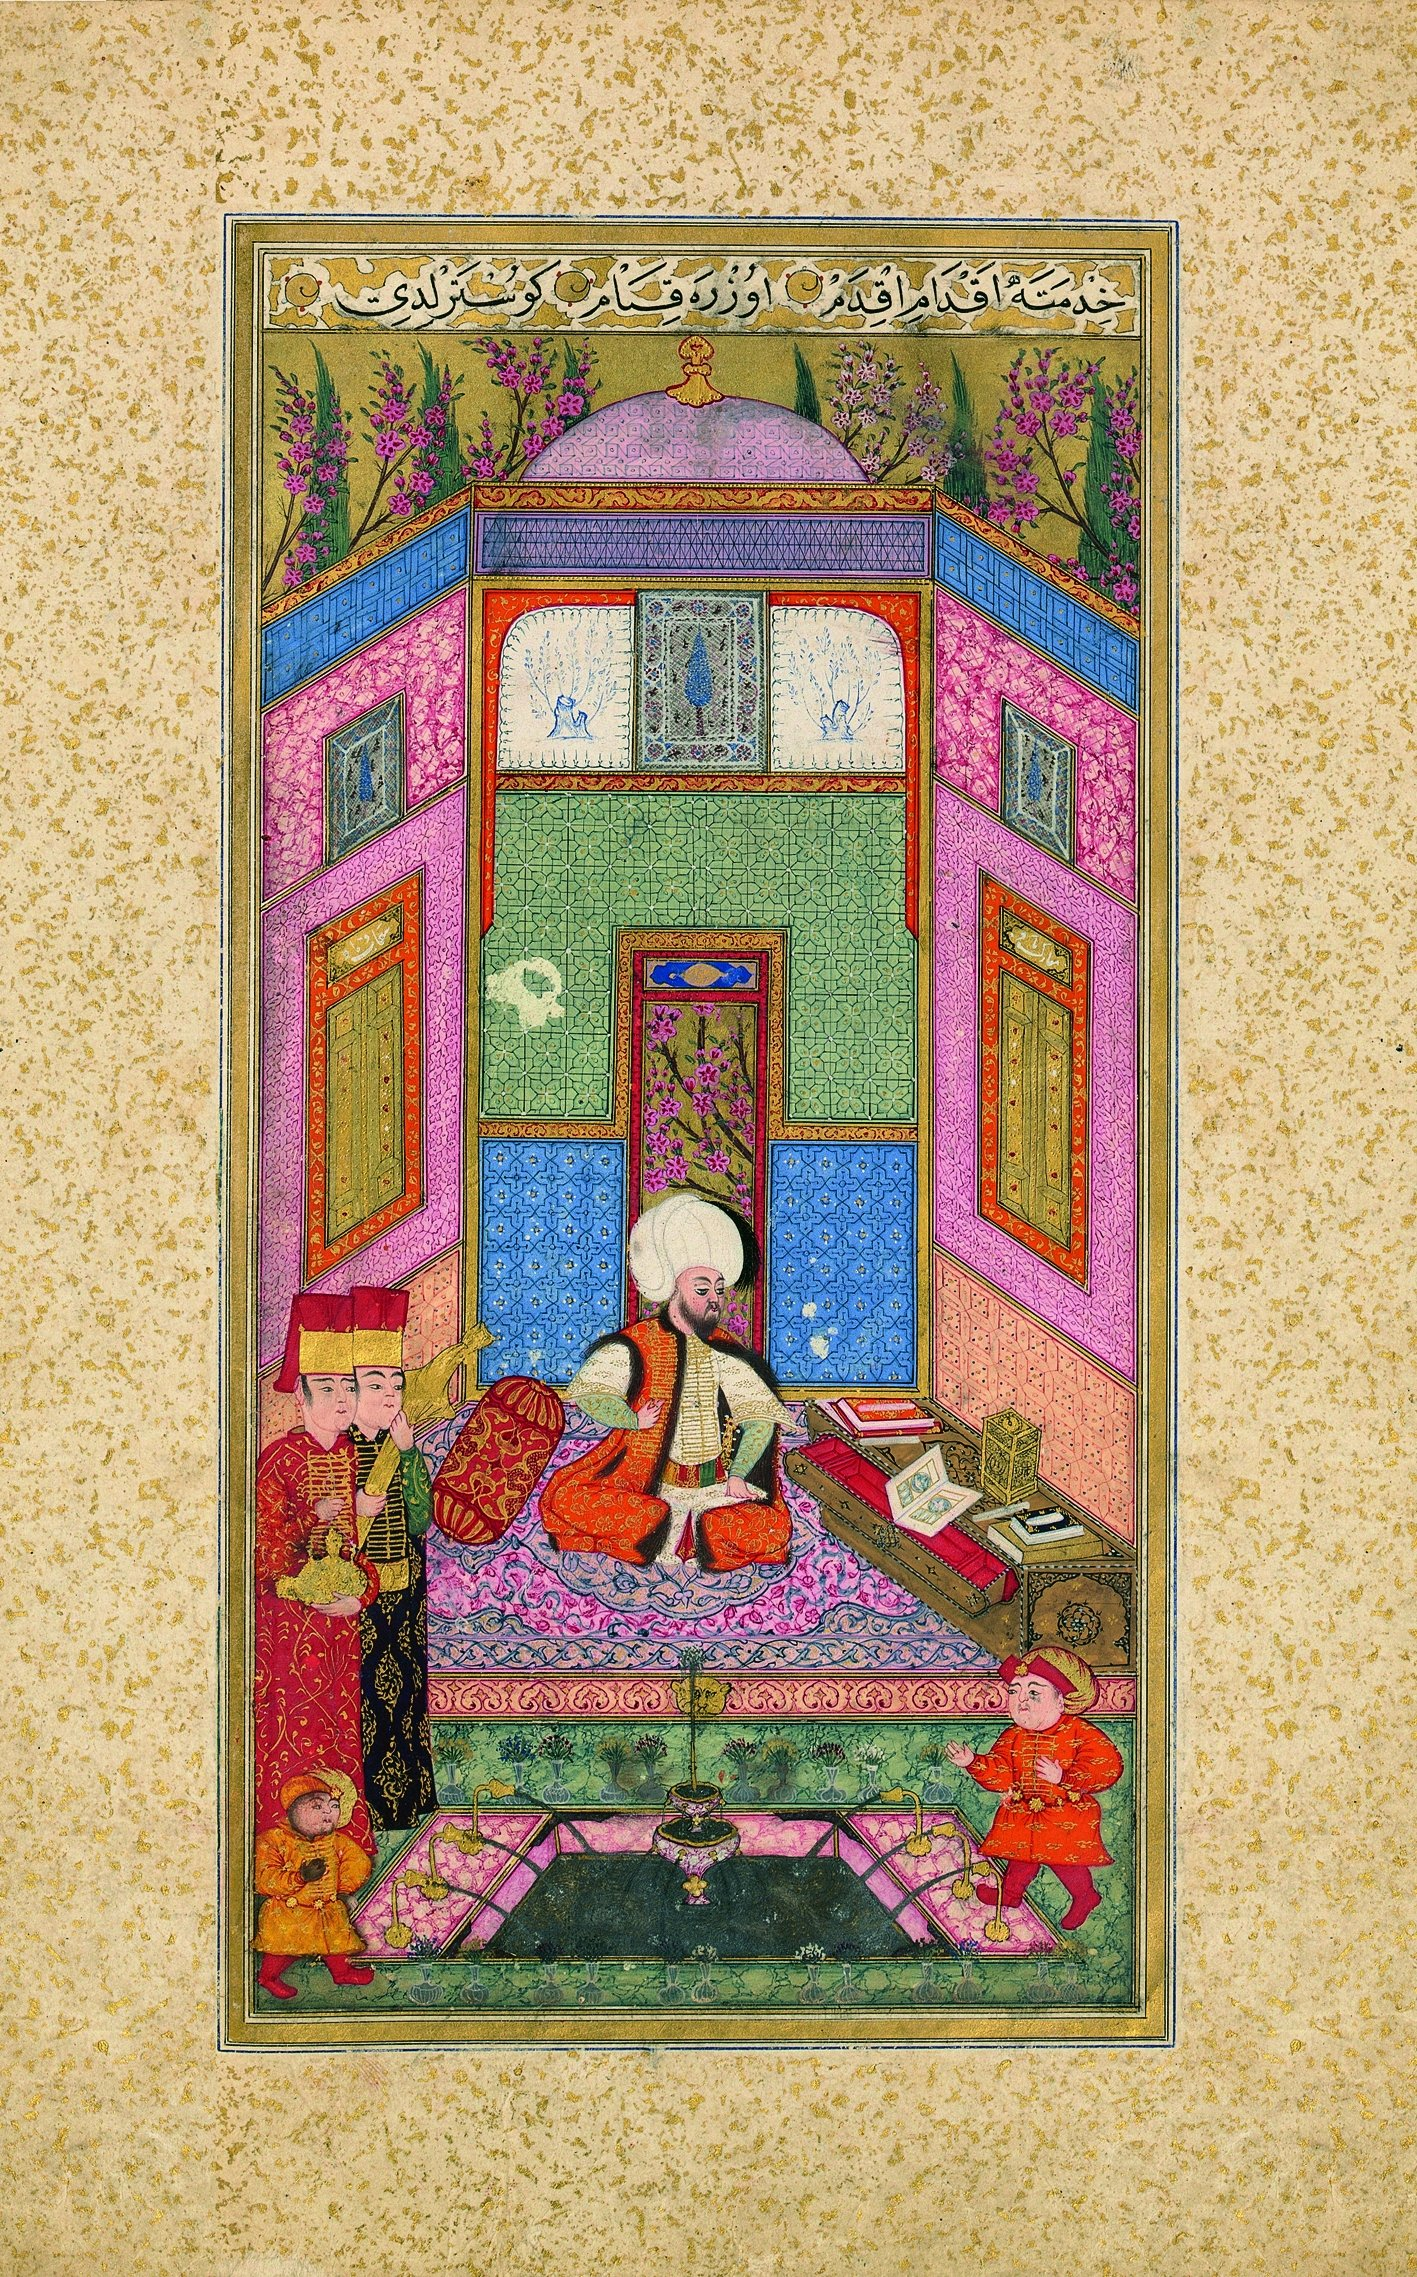 """The first miniature of the illuminated manuscript, """"The Book of Felicity,"""" depicts Sultan Murad III reading. (Wikimedia Photo)"""